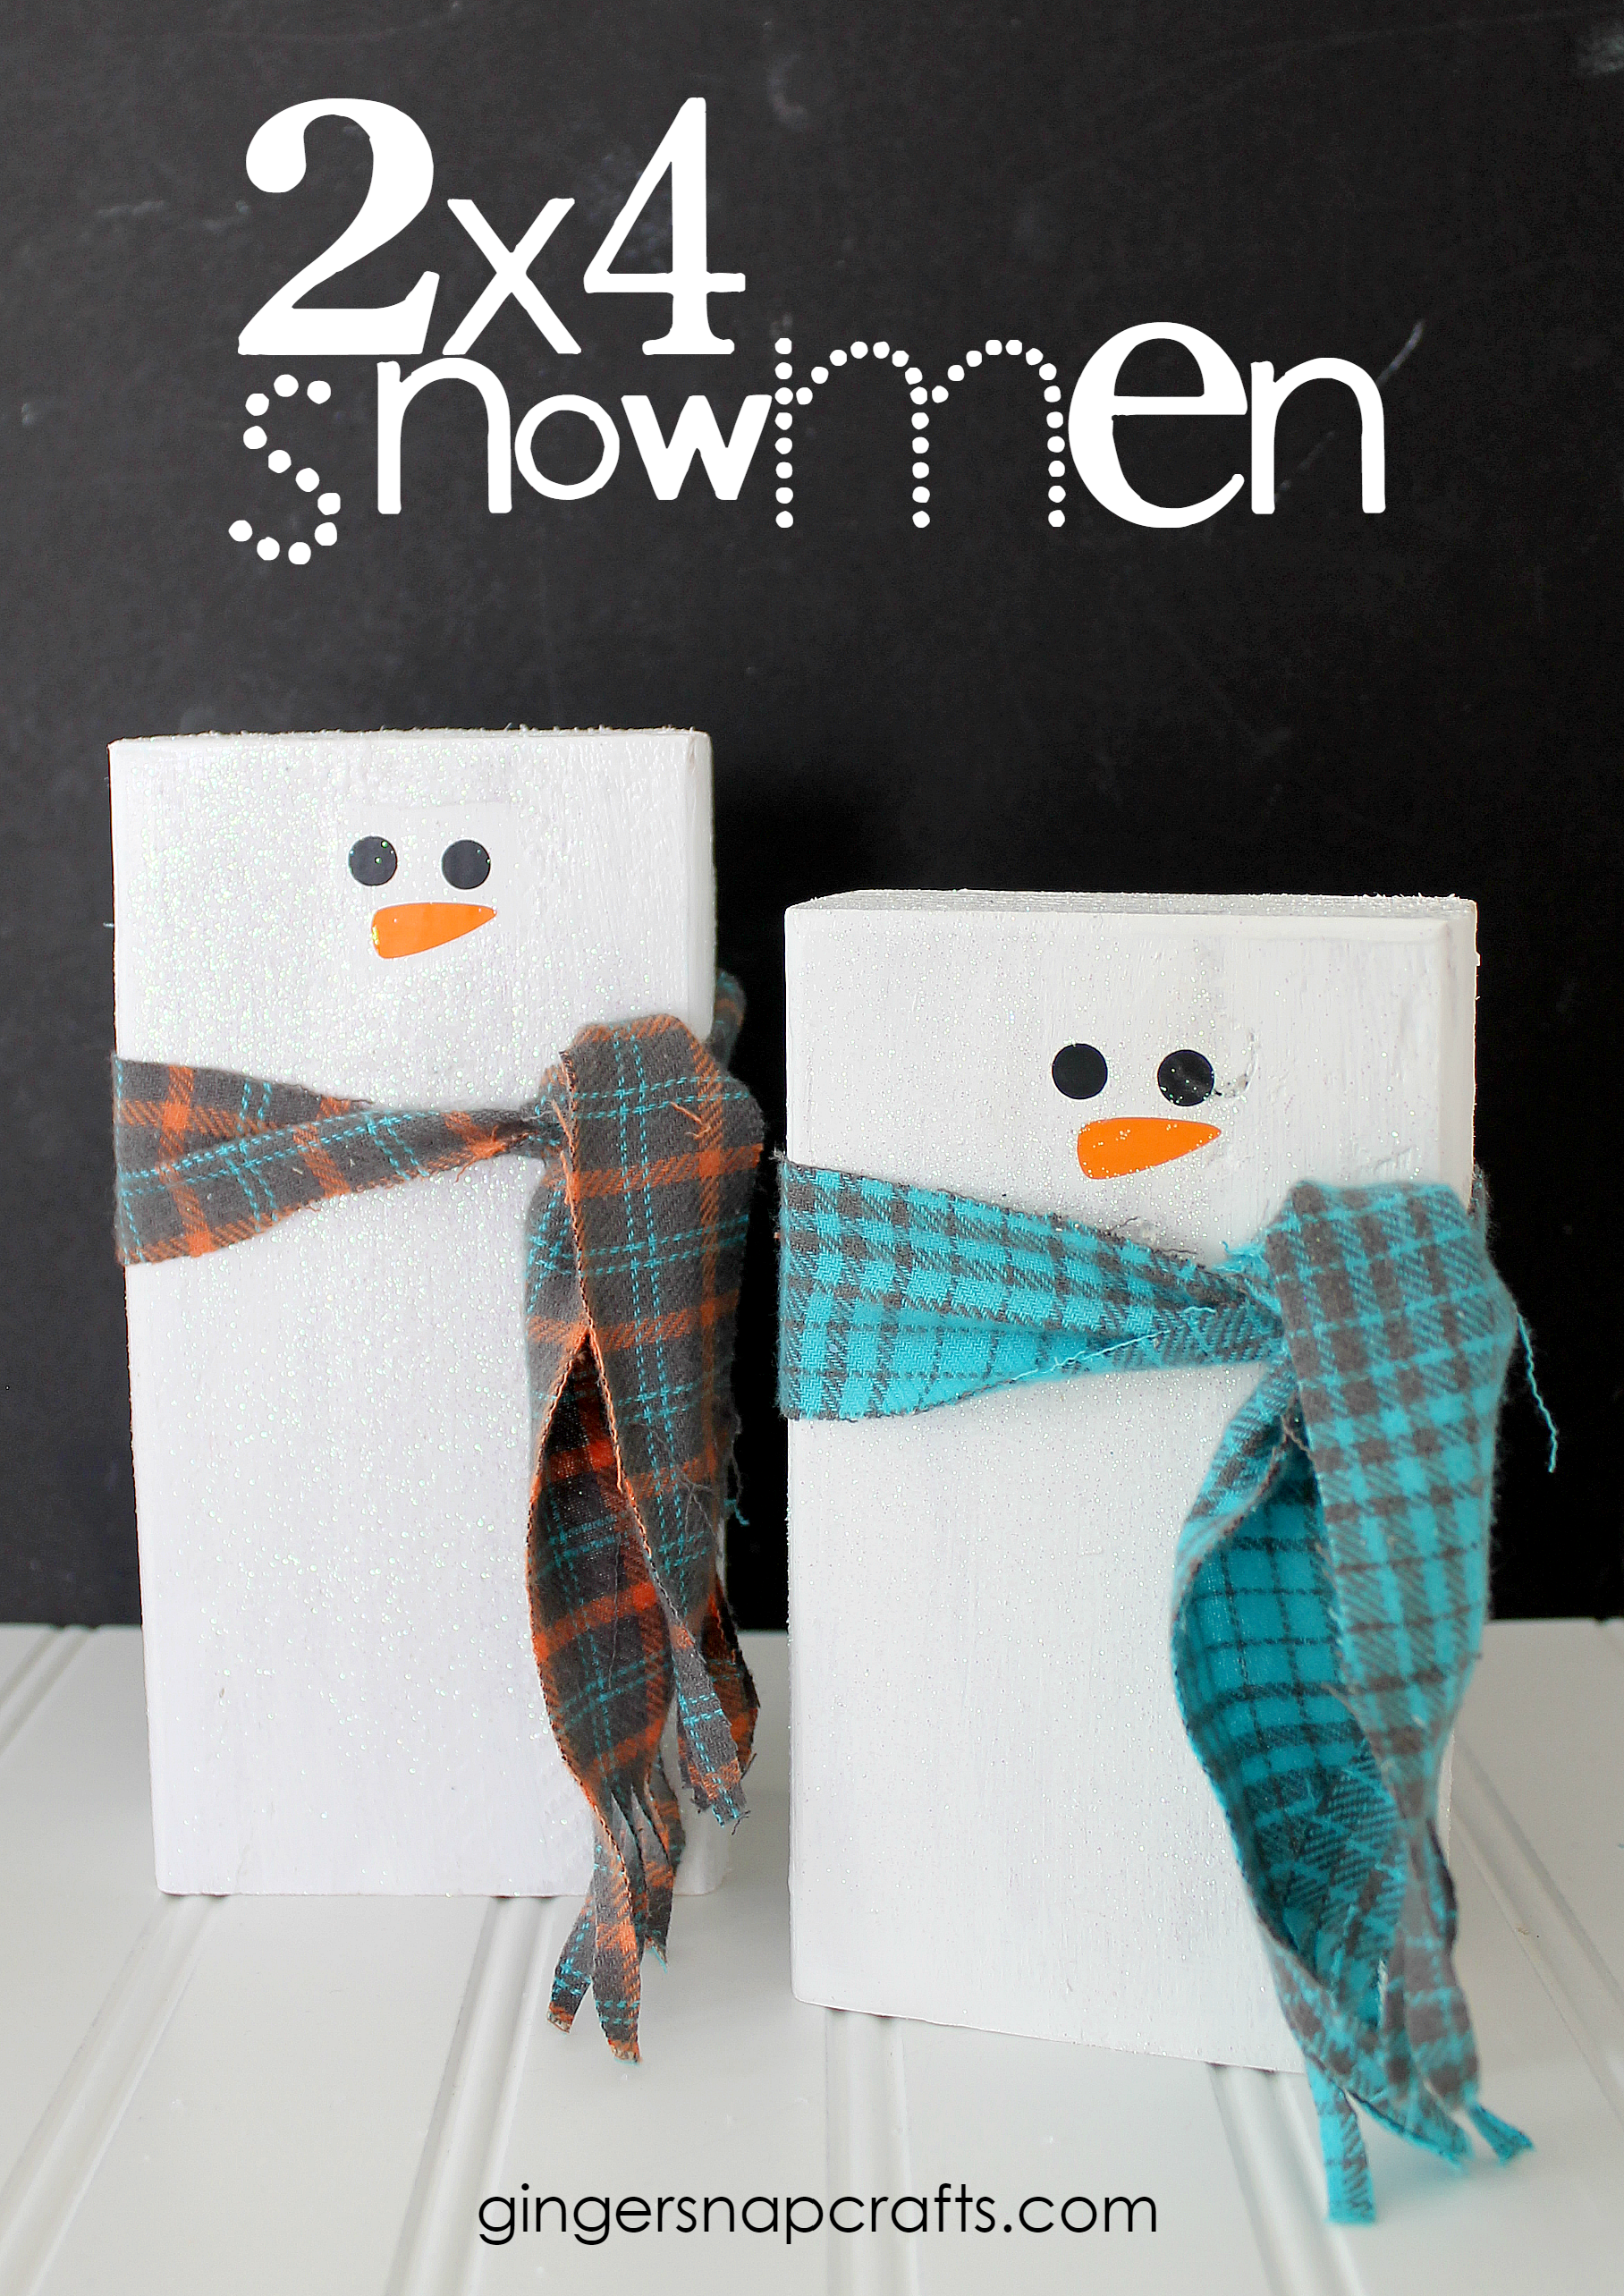 2x4 Snowmen Kid Craft Tutorial Design Dazzle